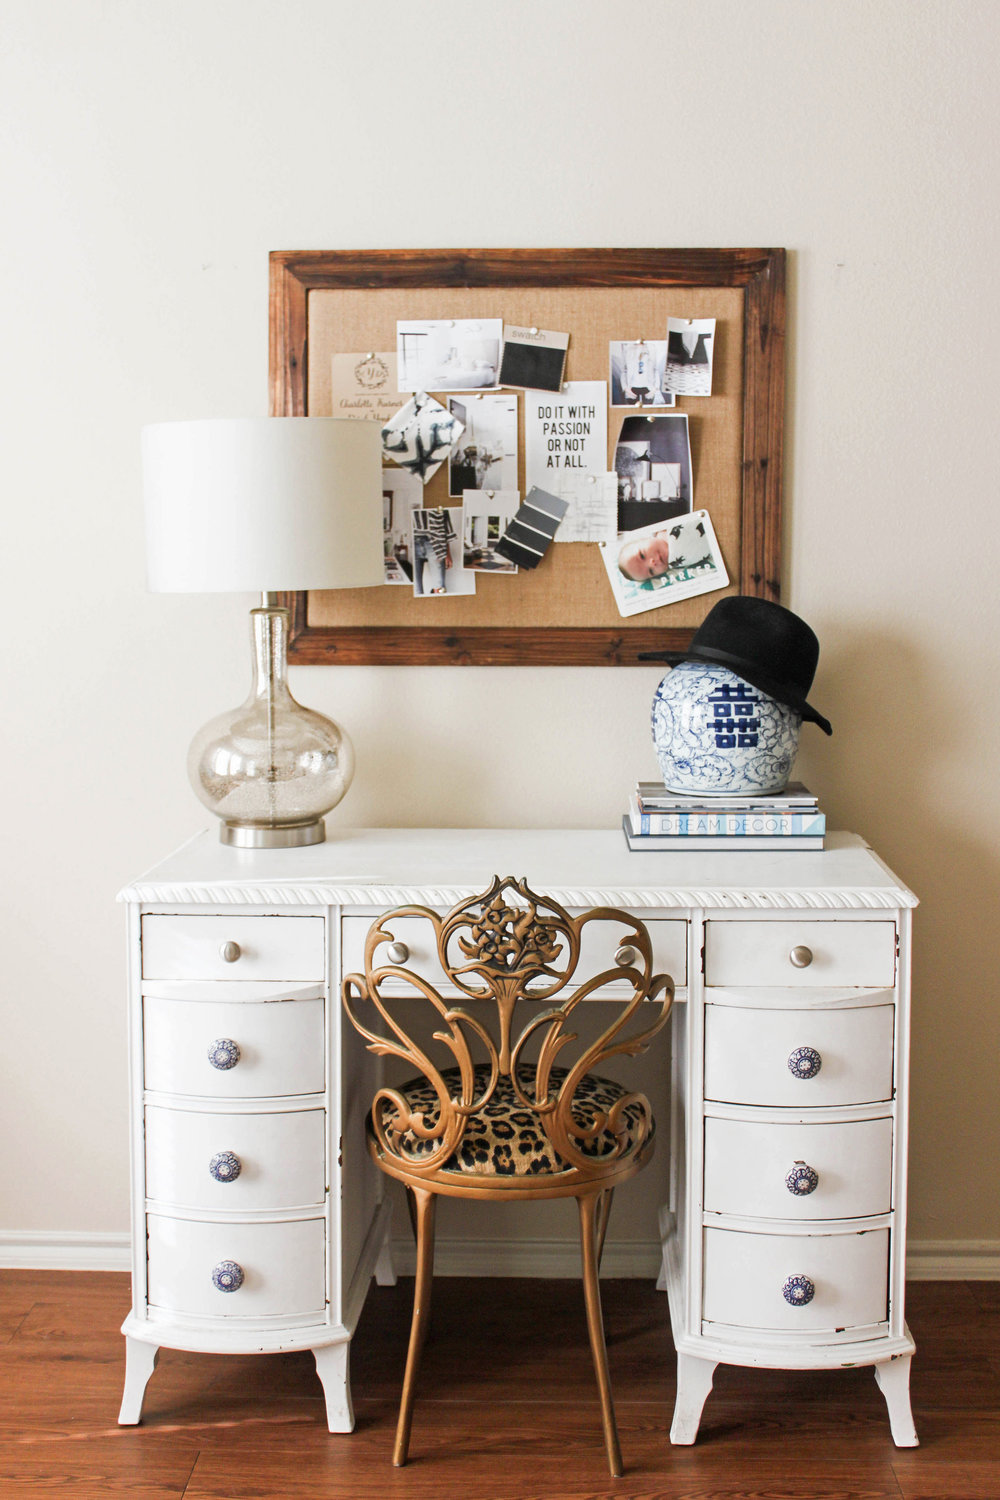 How To: Incorporate Family Heirlooms (Issue 10)